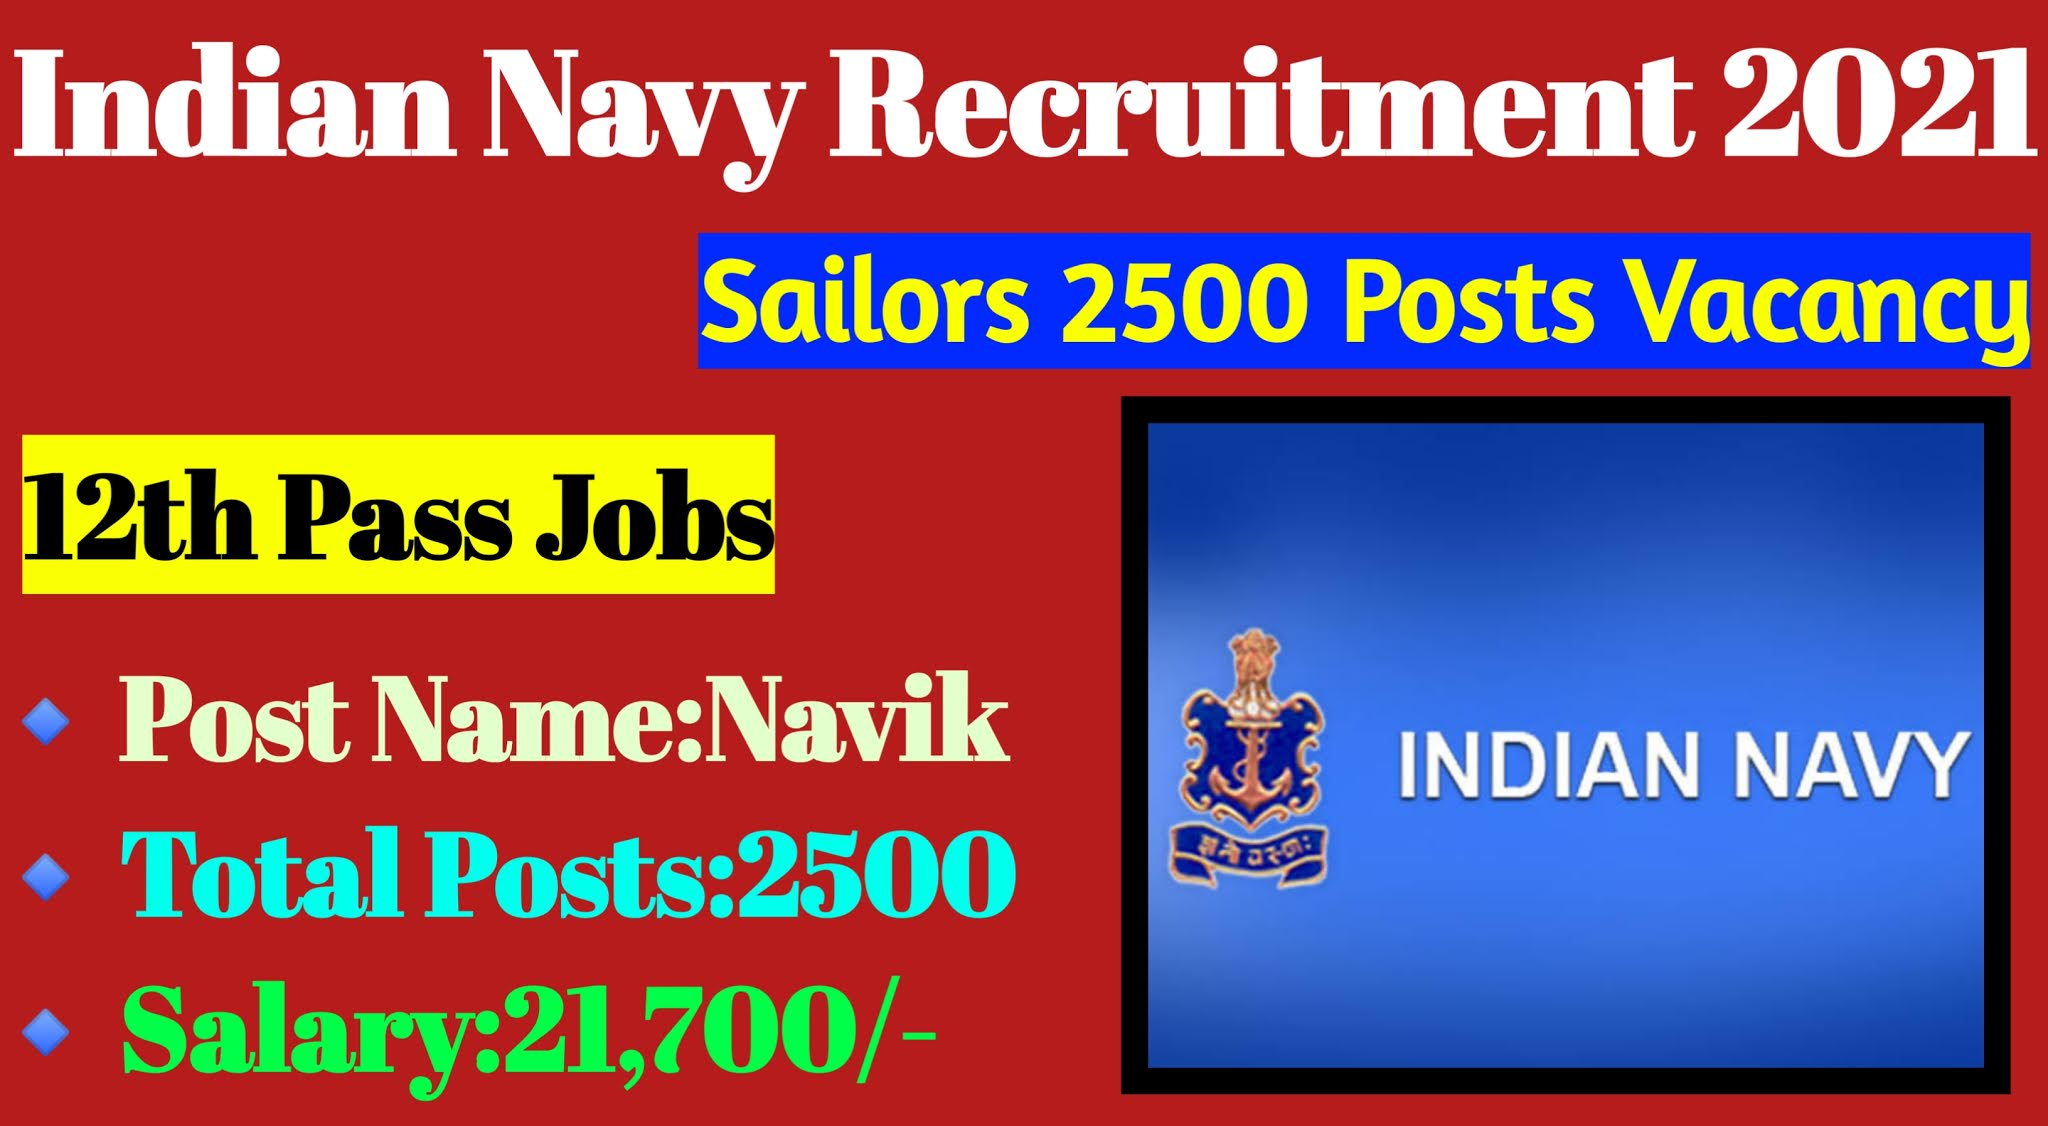 Indian navy navik recruitment 2021,indian navy recruitment 2021,indian recruitment 2021 pdf,indian recruitment after 12th, indian navy recruitment 21